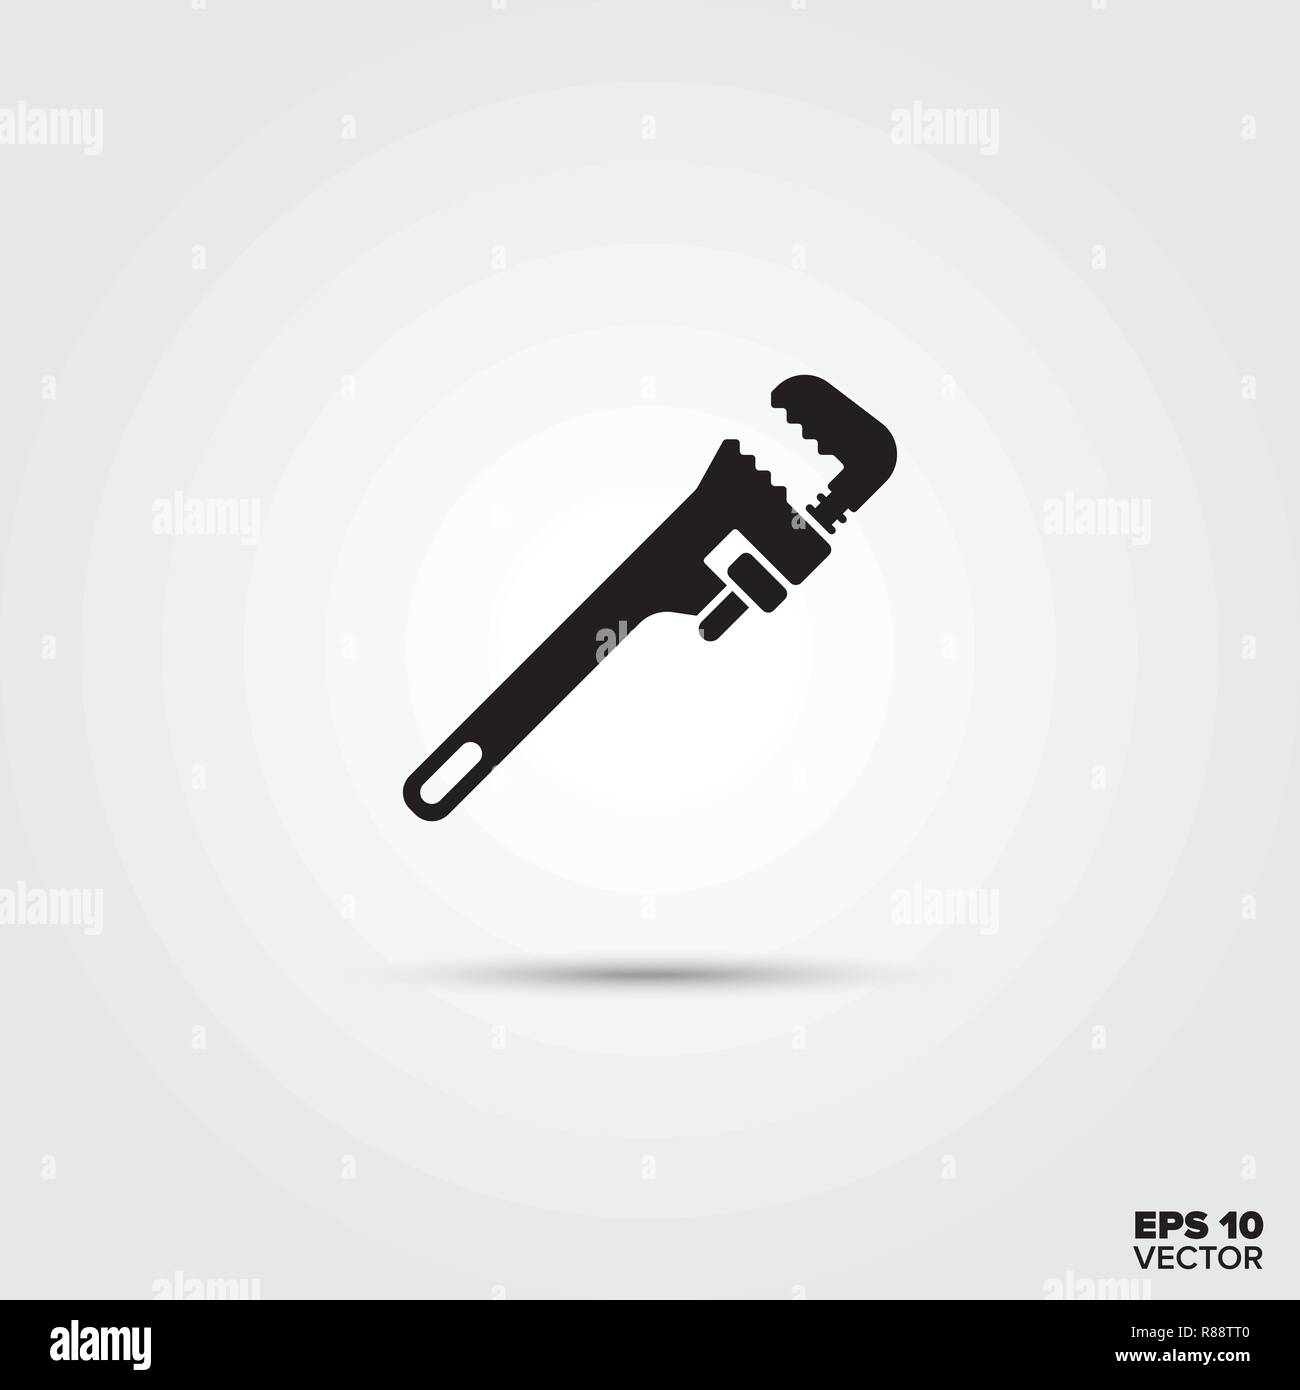 Adjustable wrench vector glyph icon - Stock Vector